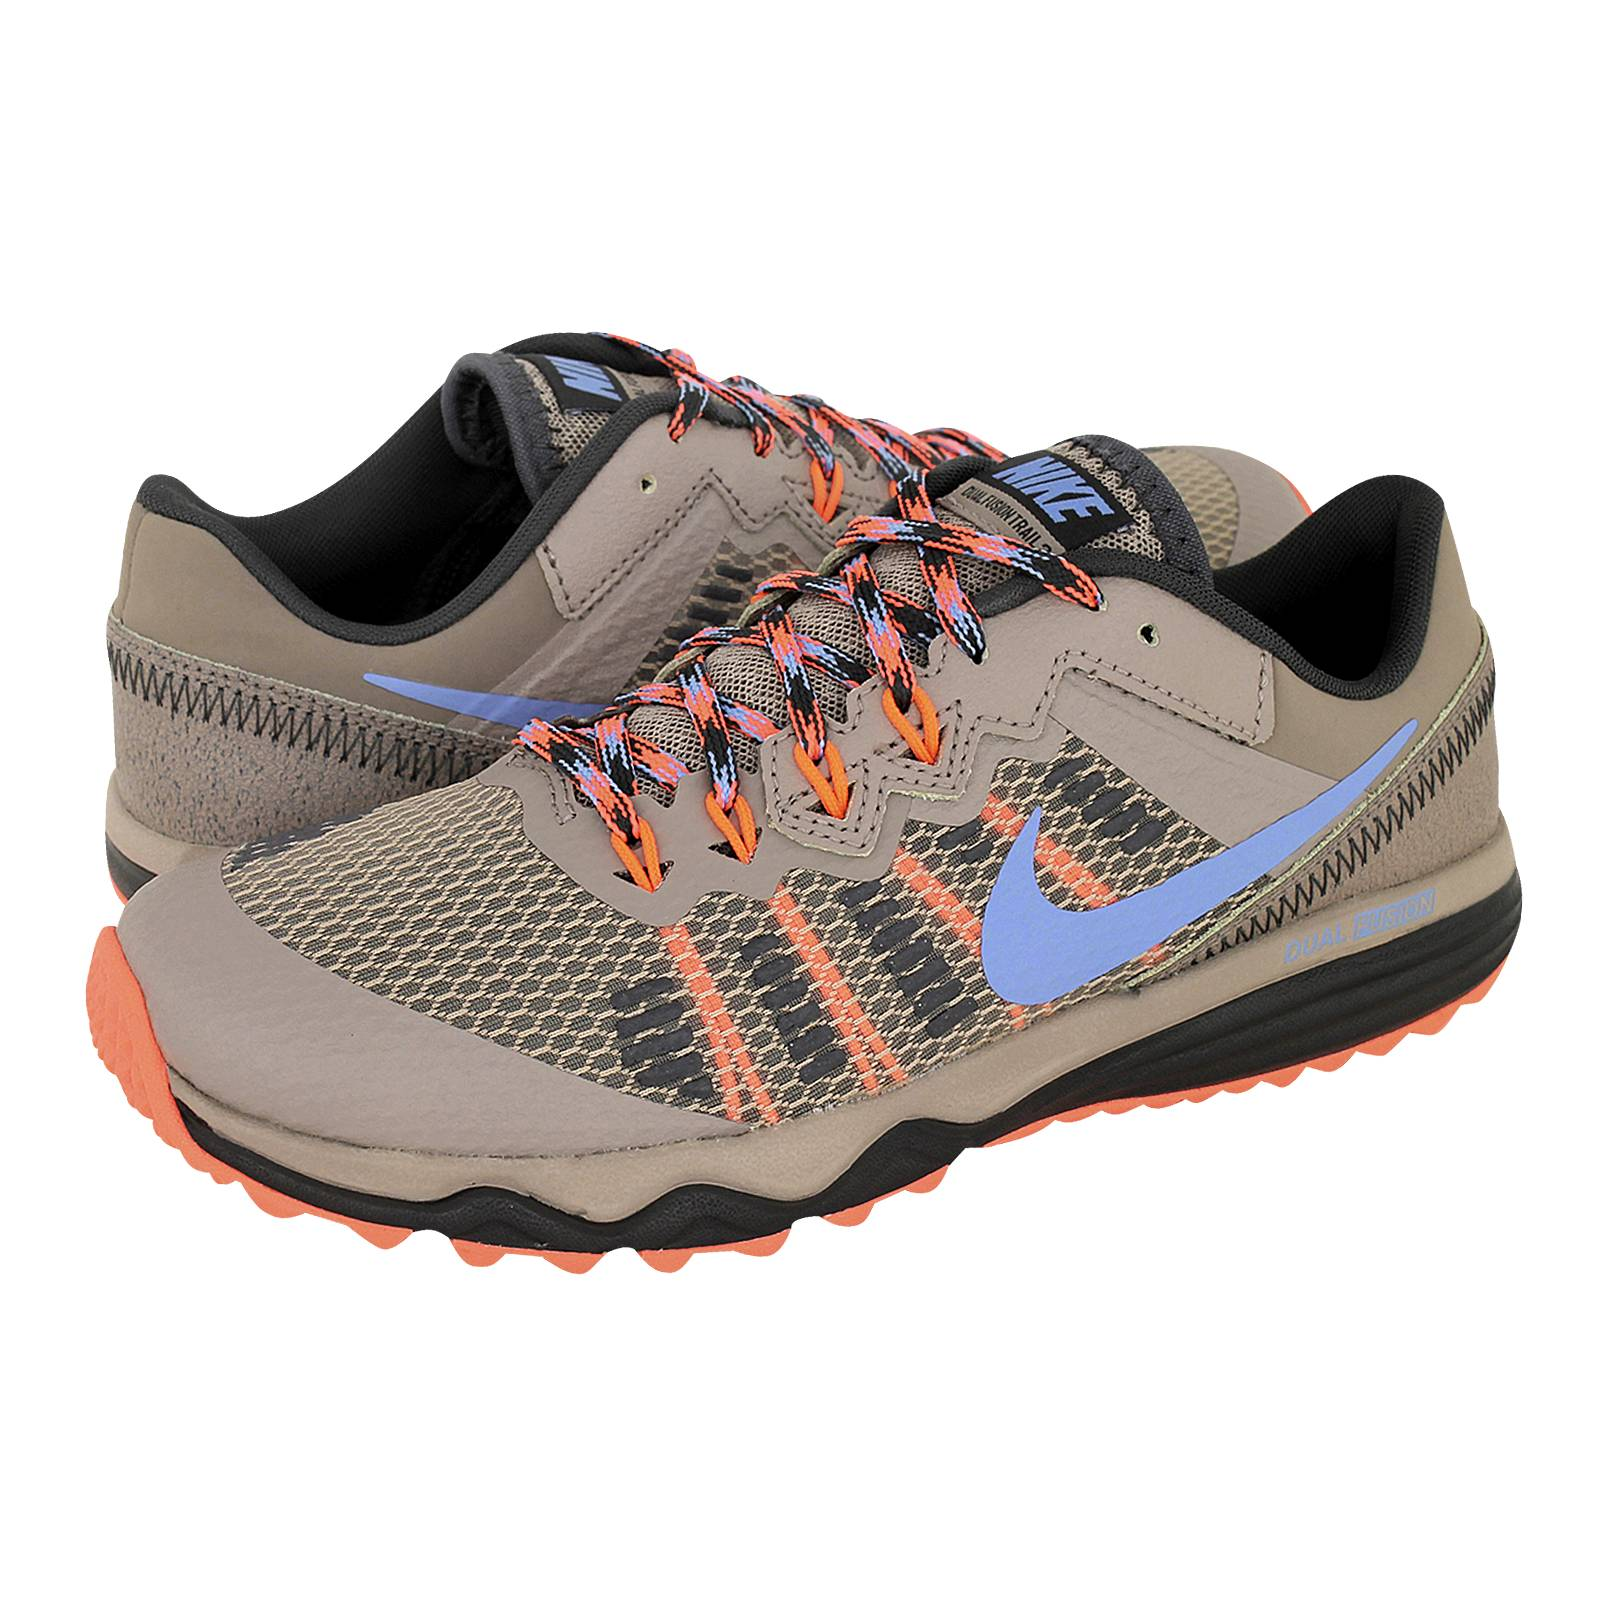 Prisión foro cantidad  Dual Fusion Trail 2 - Nike Women's athletic shoes made of leather, fabric  and synthetic - Gianna Kazakou Online